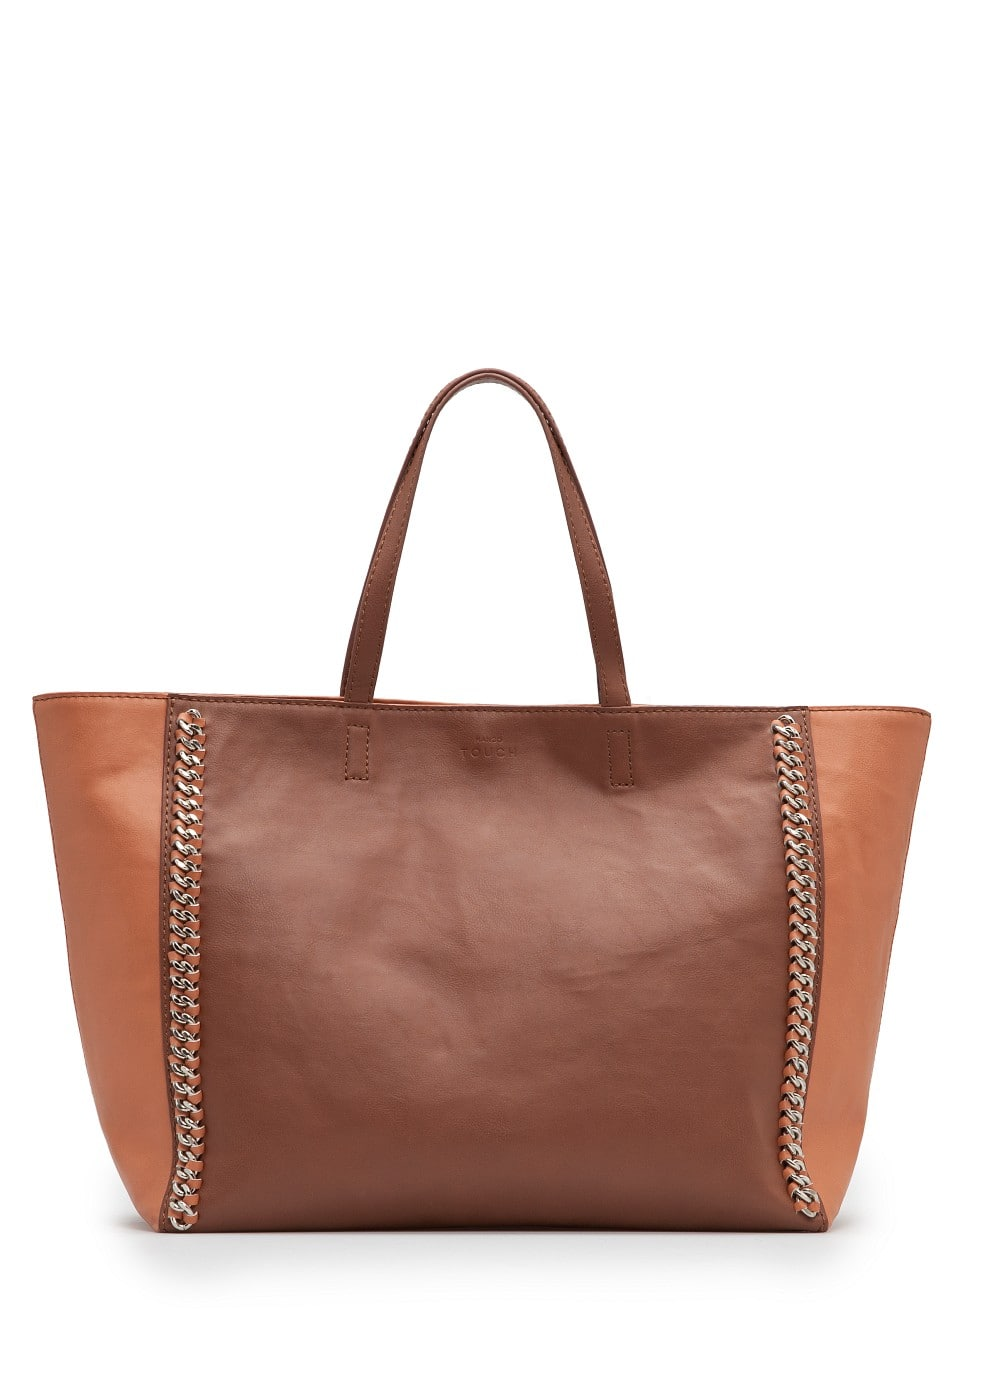 Chain trimmed shopper